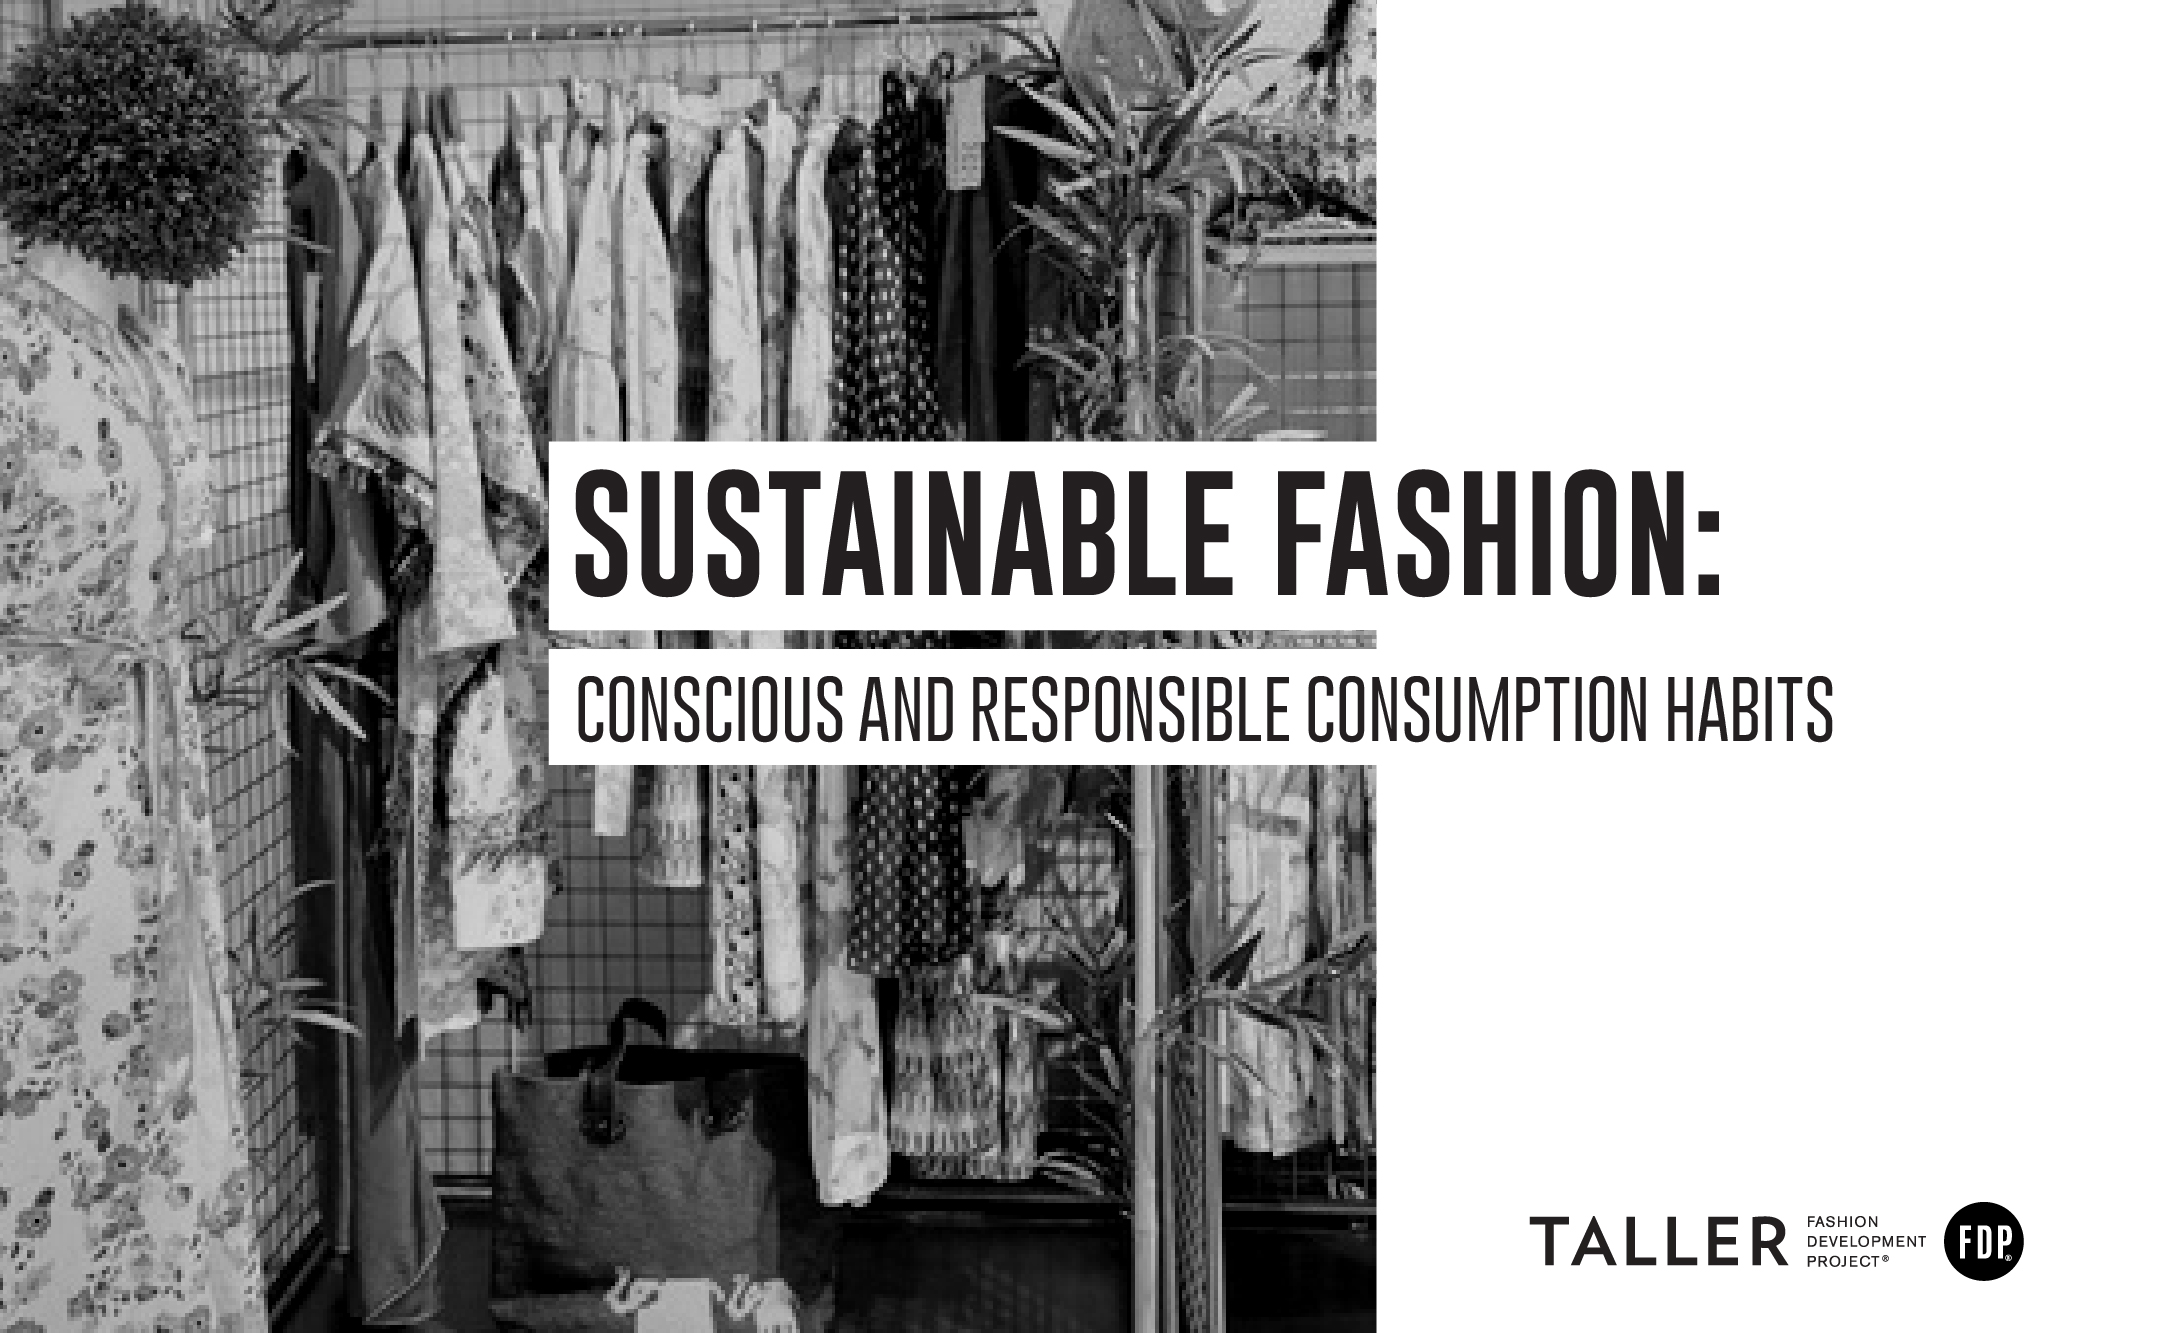 Sustainable Fashion: Conscious and responsible consumption habits.